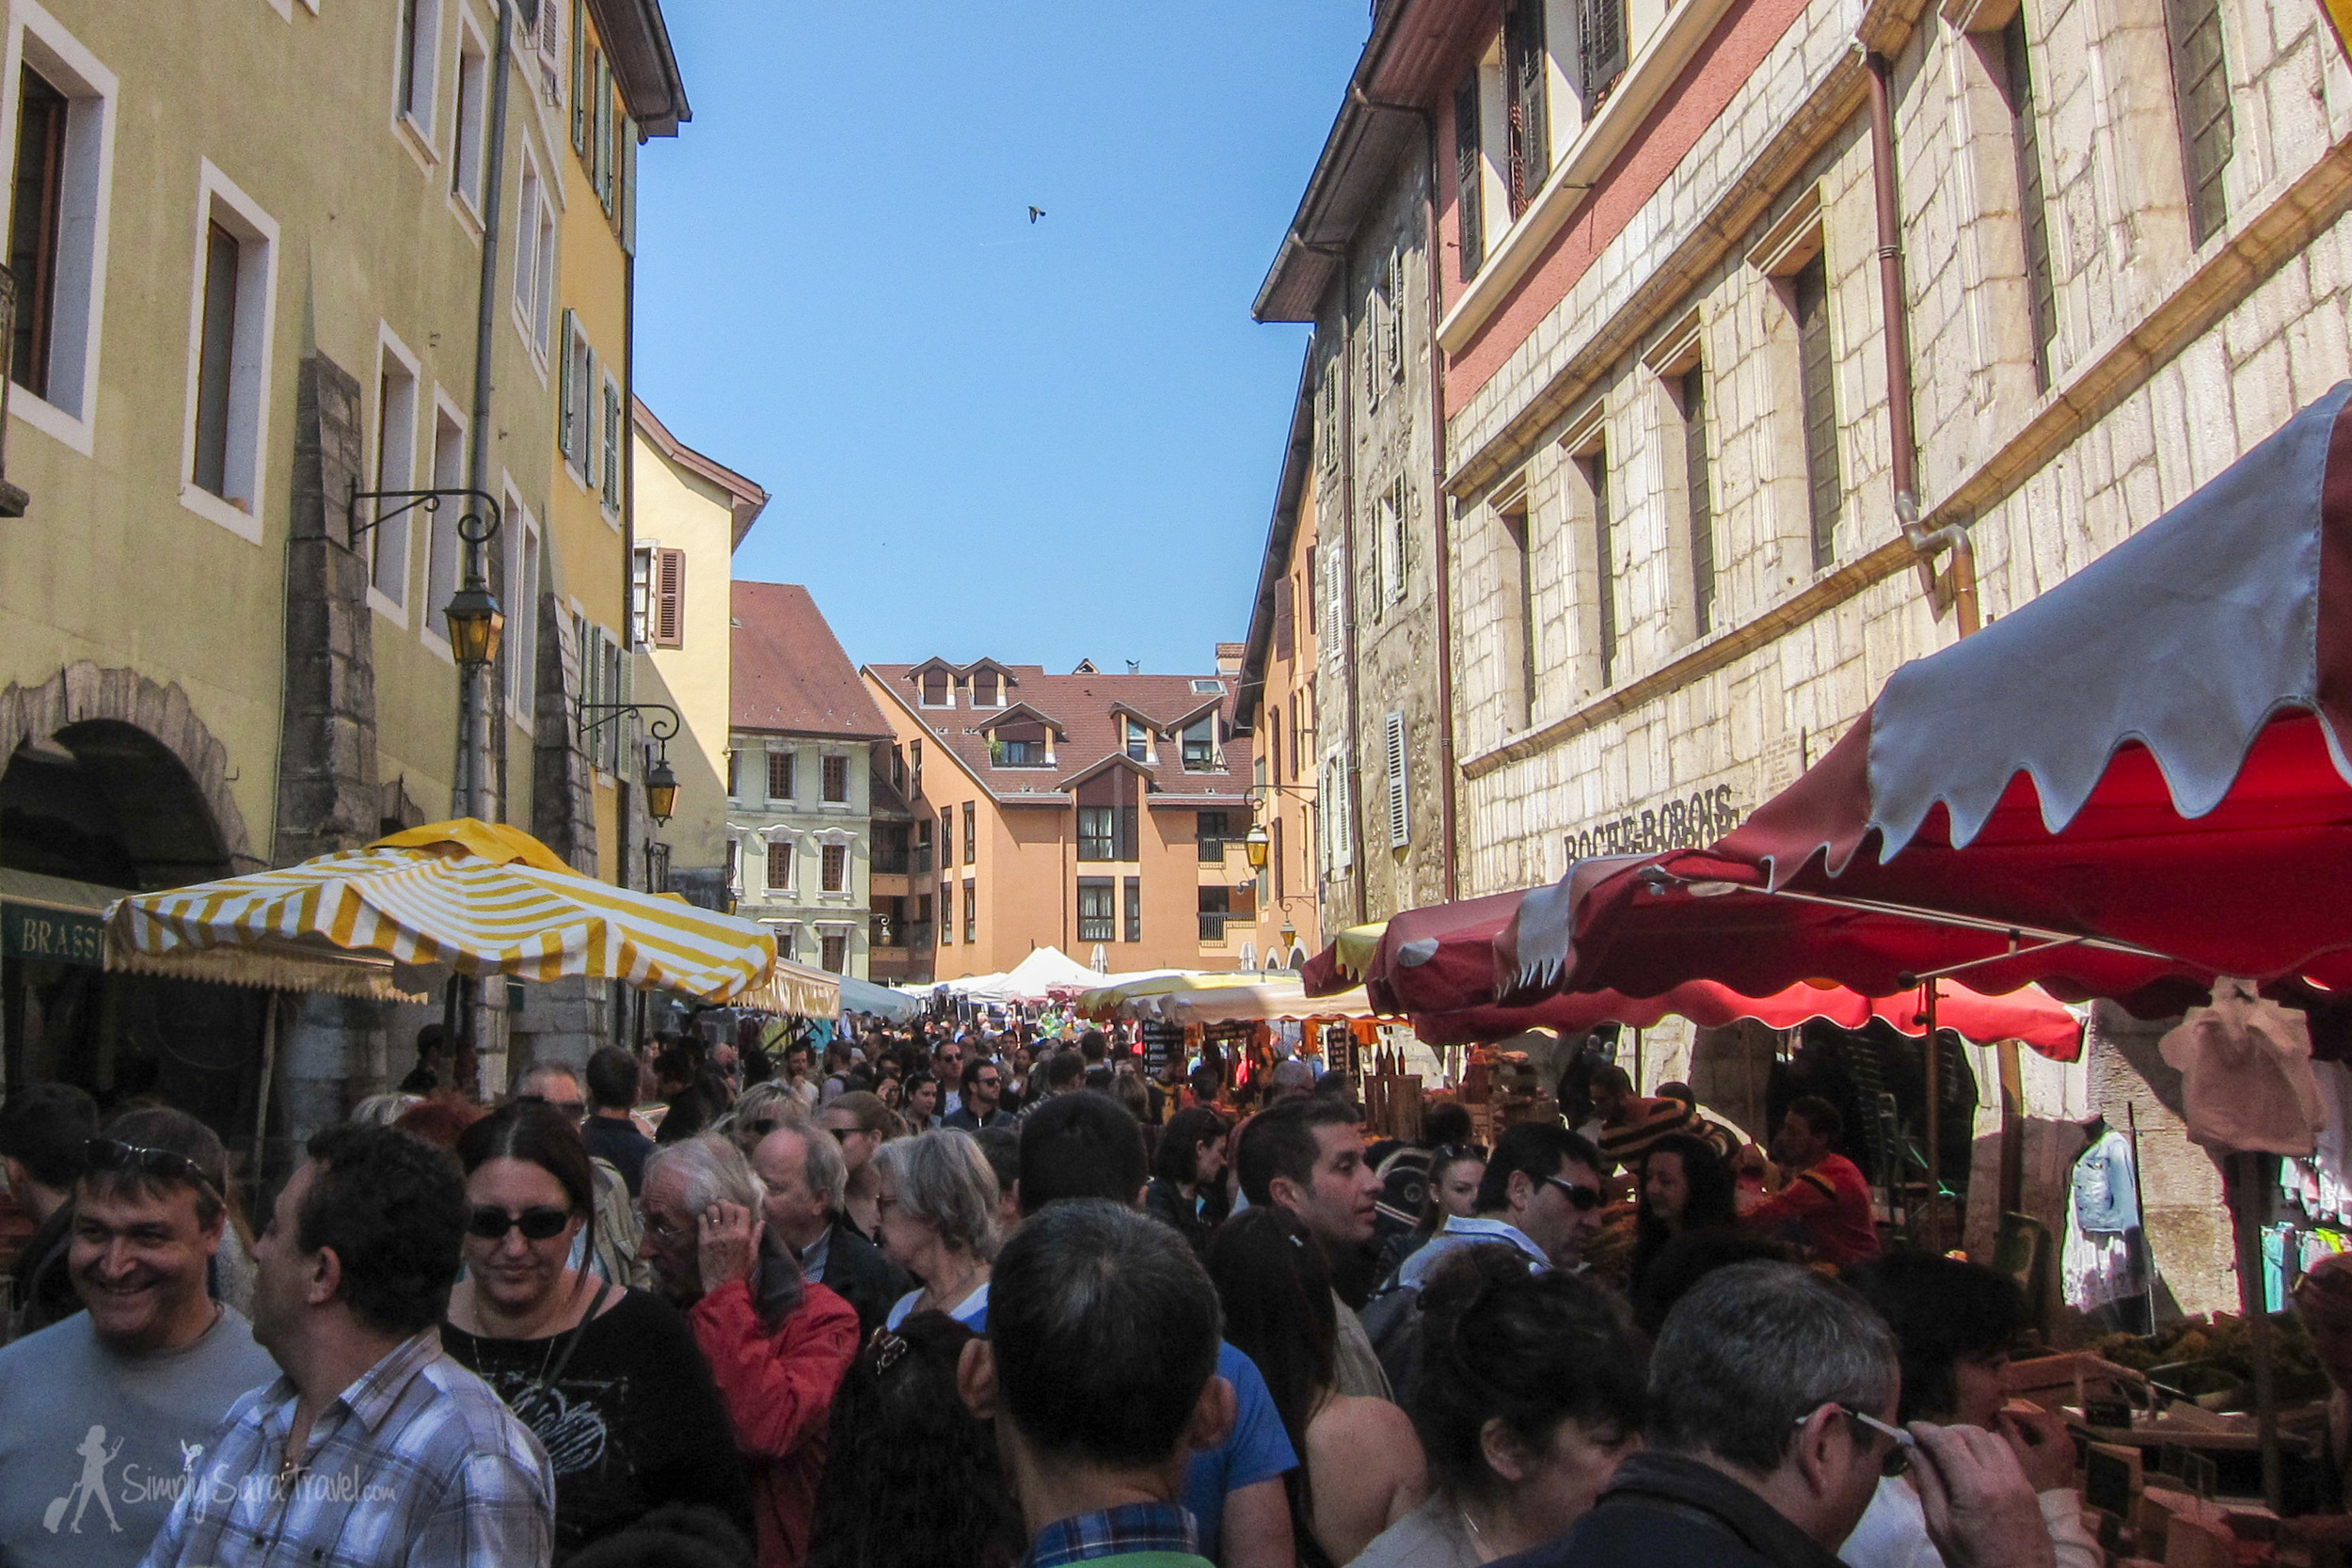 Markets draw in crowds, but factor in one that takes place on the weekend, and in an adorable old town like Annecy, and expect to find the streets looking like this!